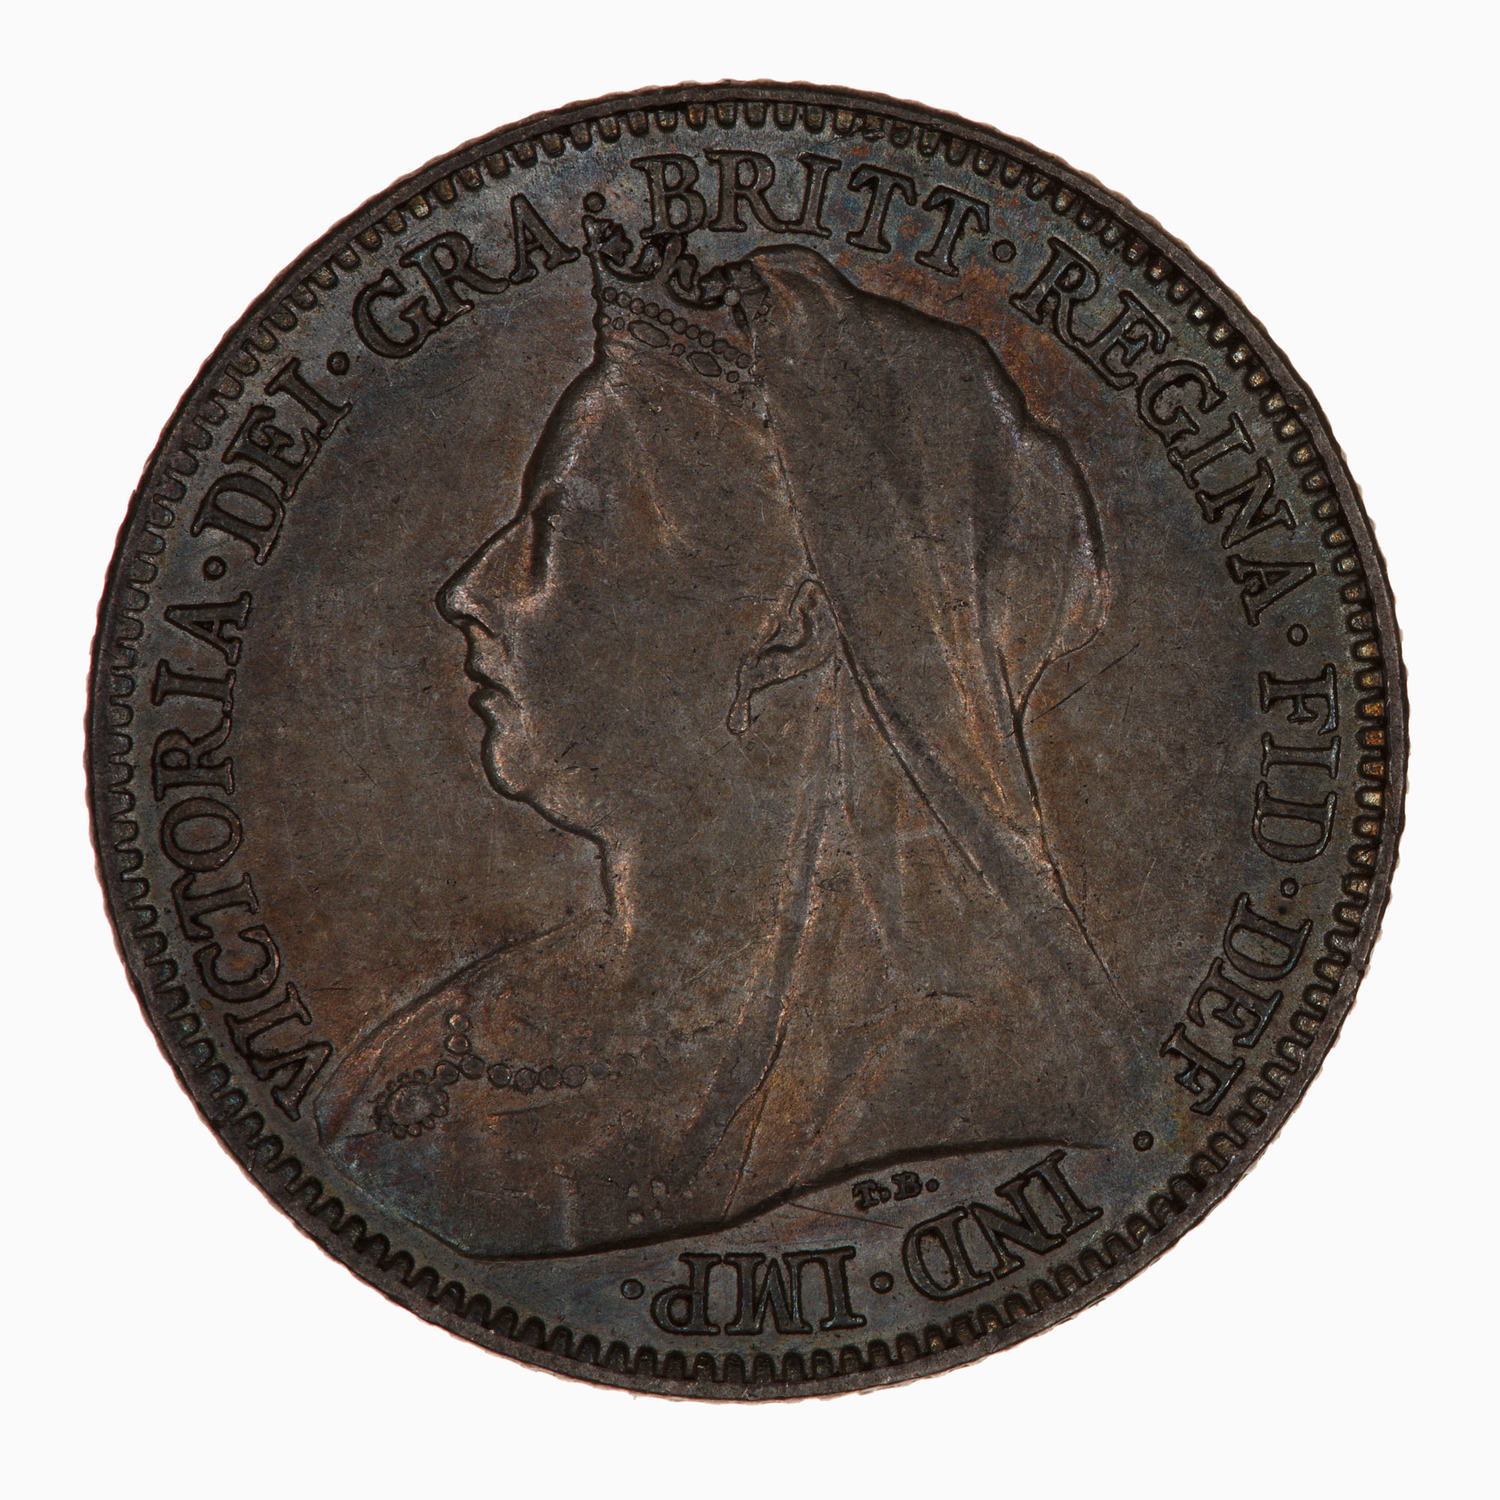 Sixpence: Photo Coin - Sixpence, Queen Victoria, Great Britain, 1900